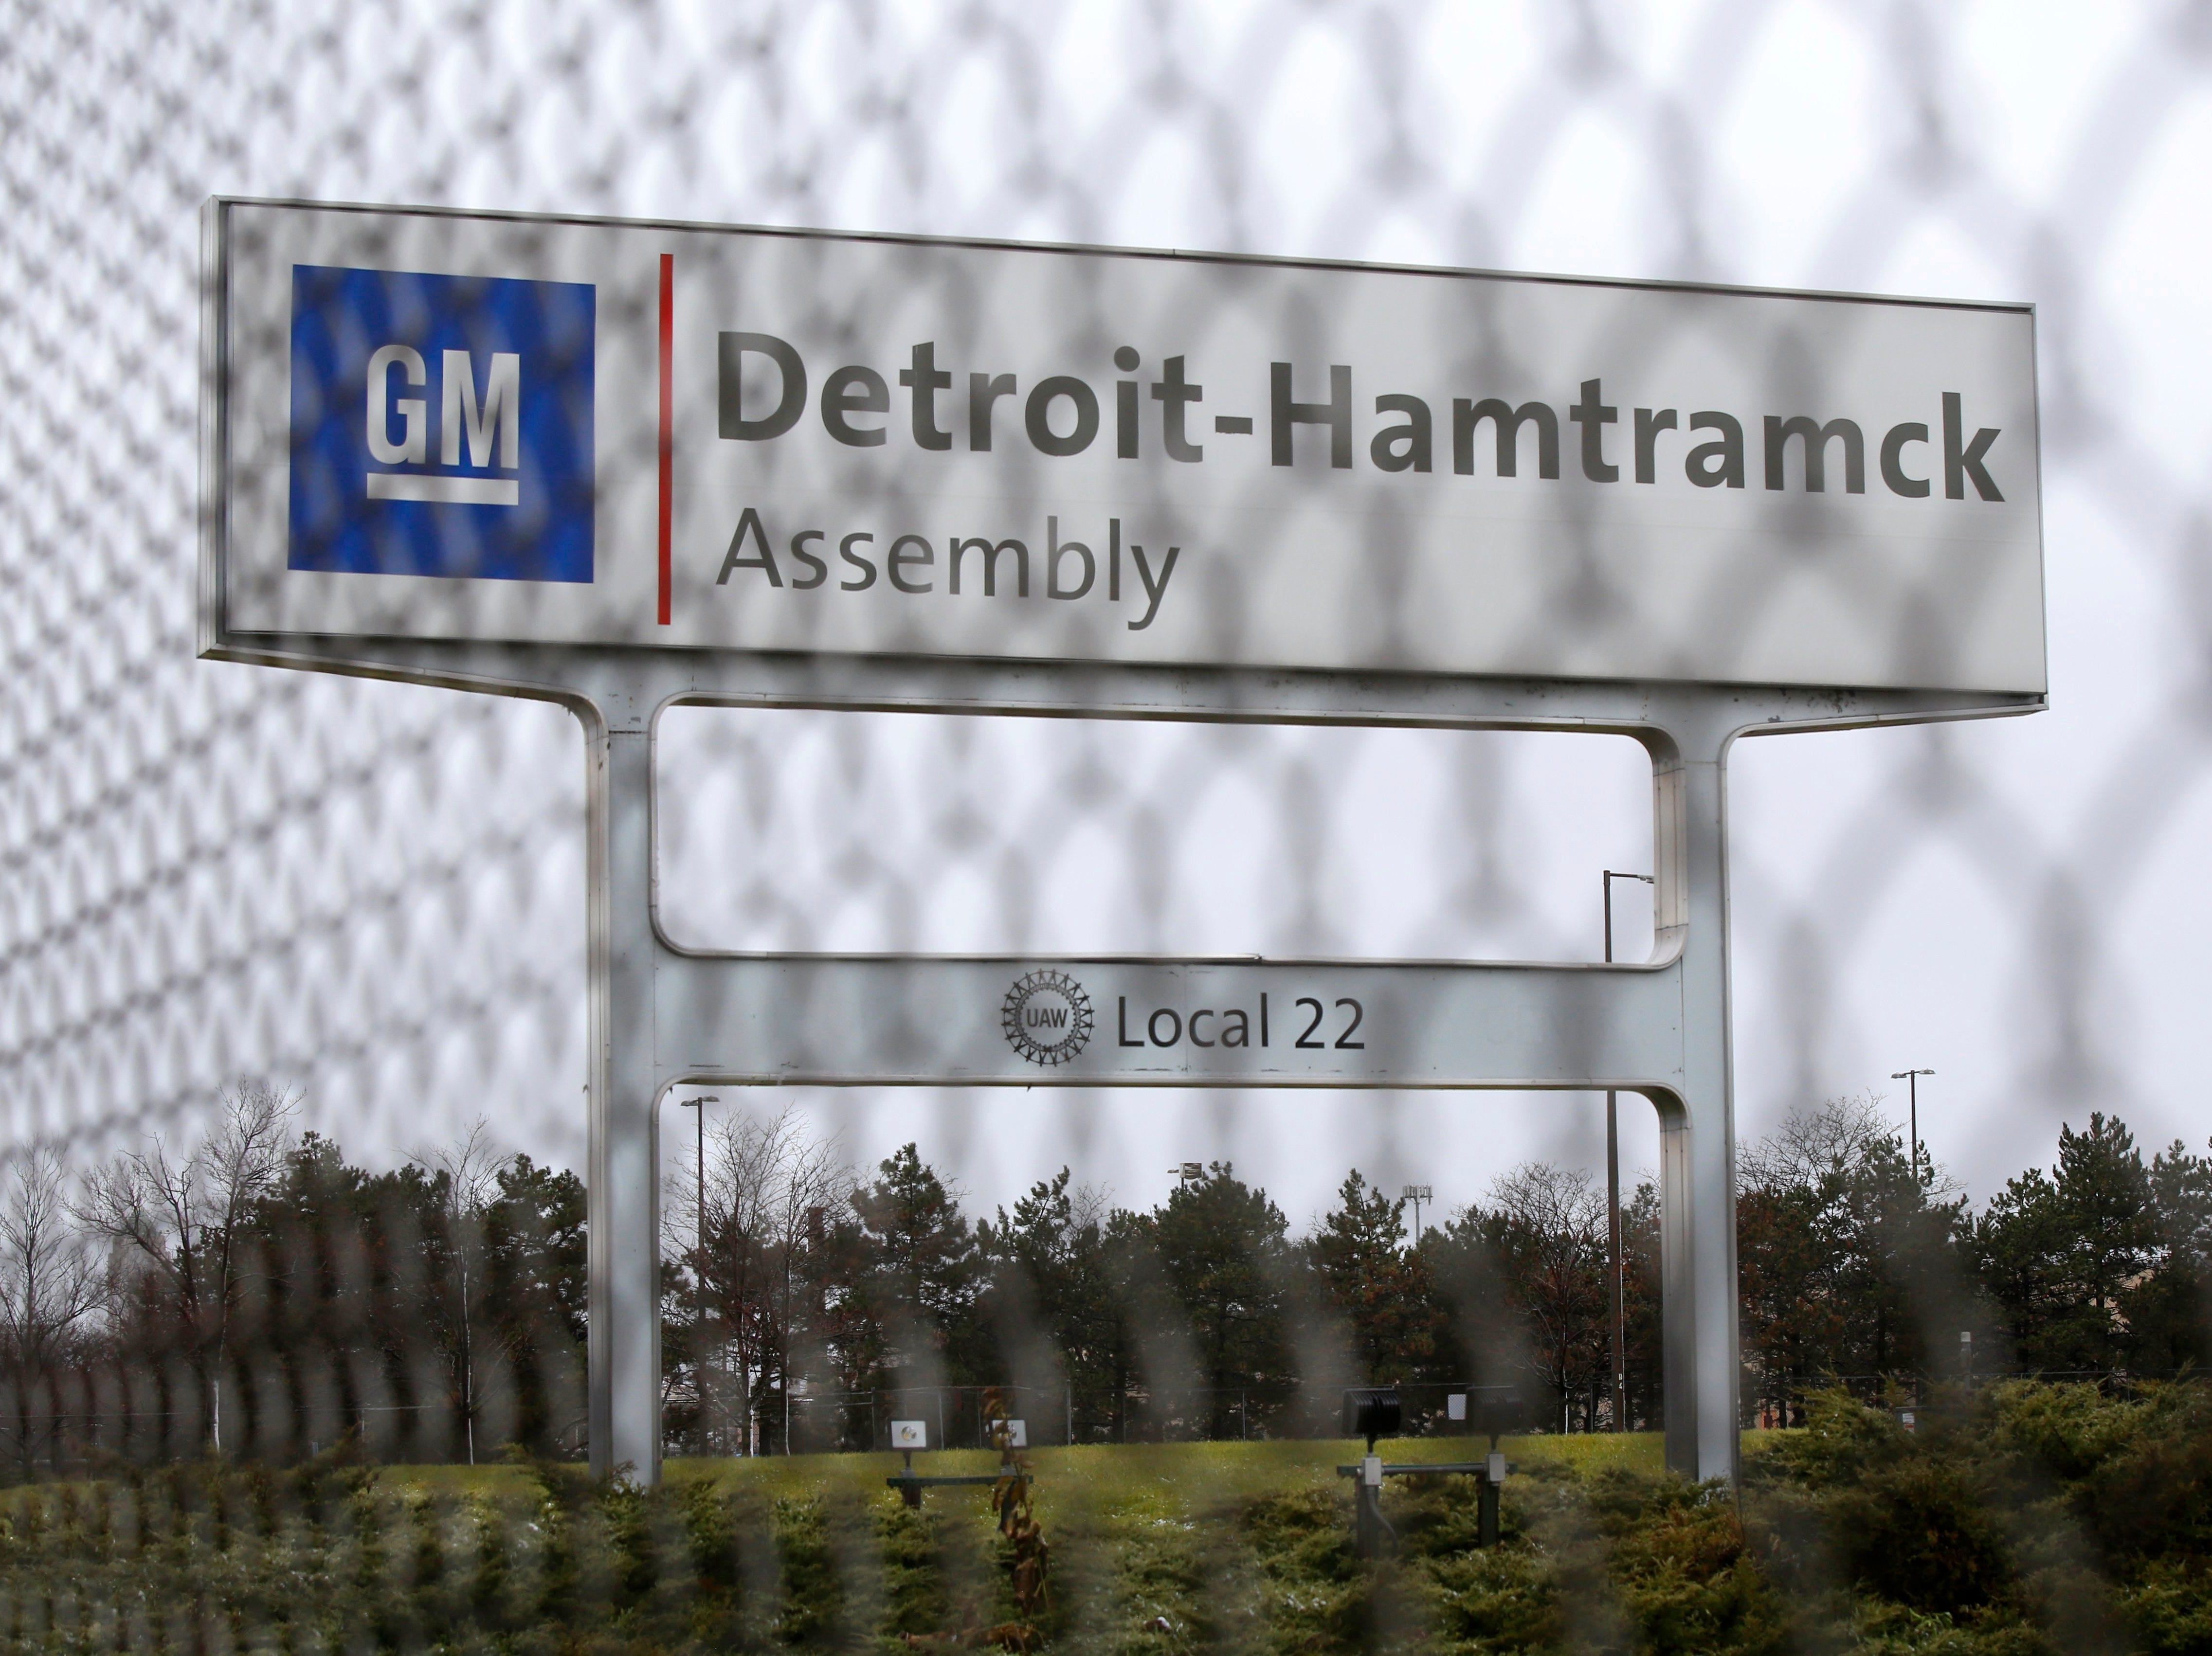 If Detroit-Hamtramck plant closes, autoworkers won't be the only ones hurting